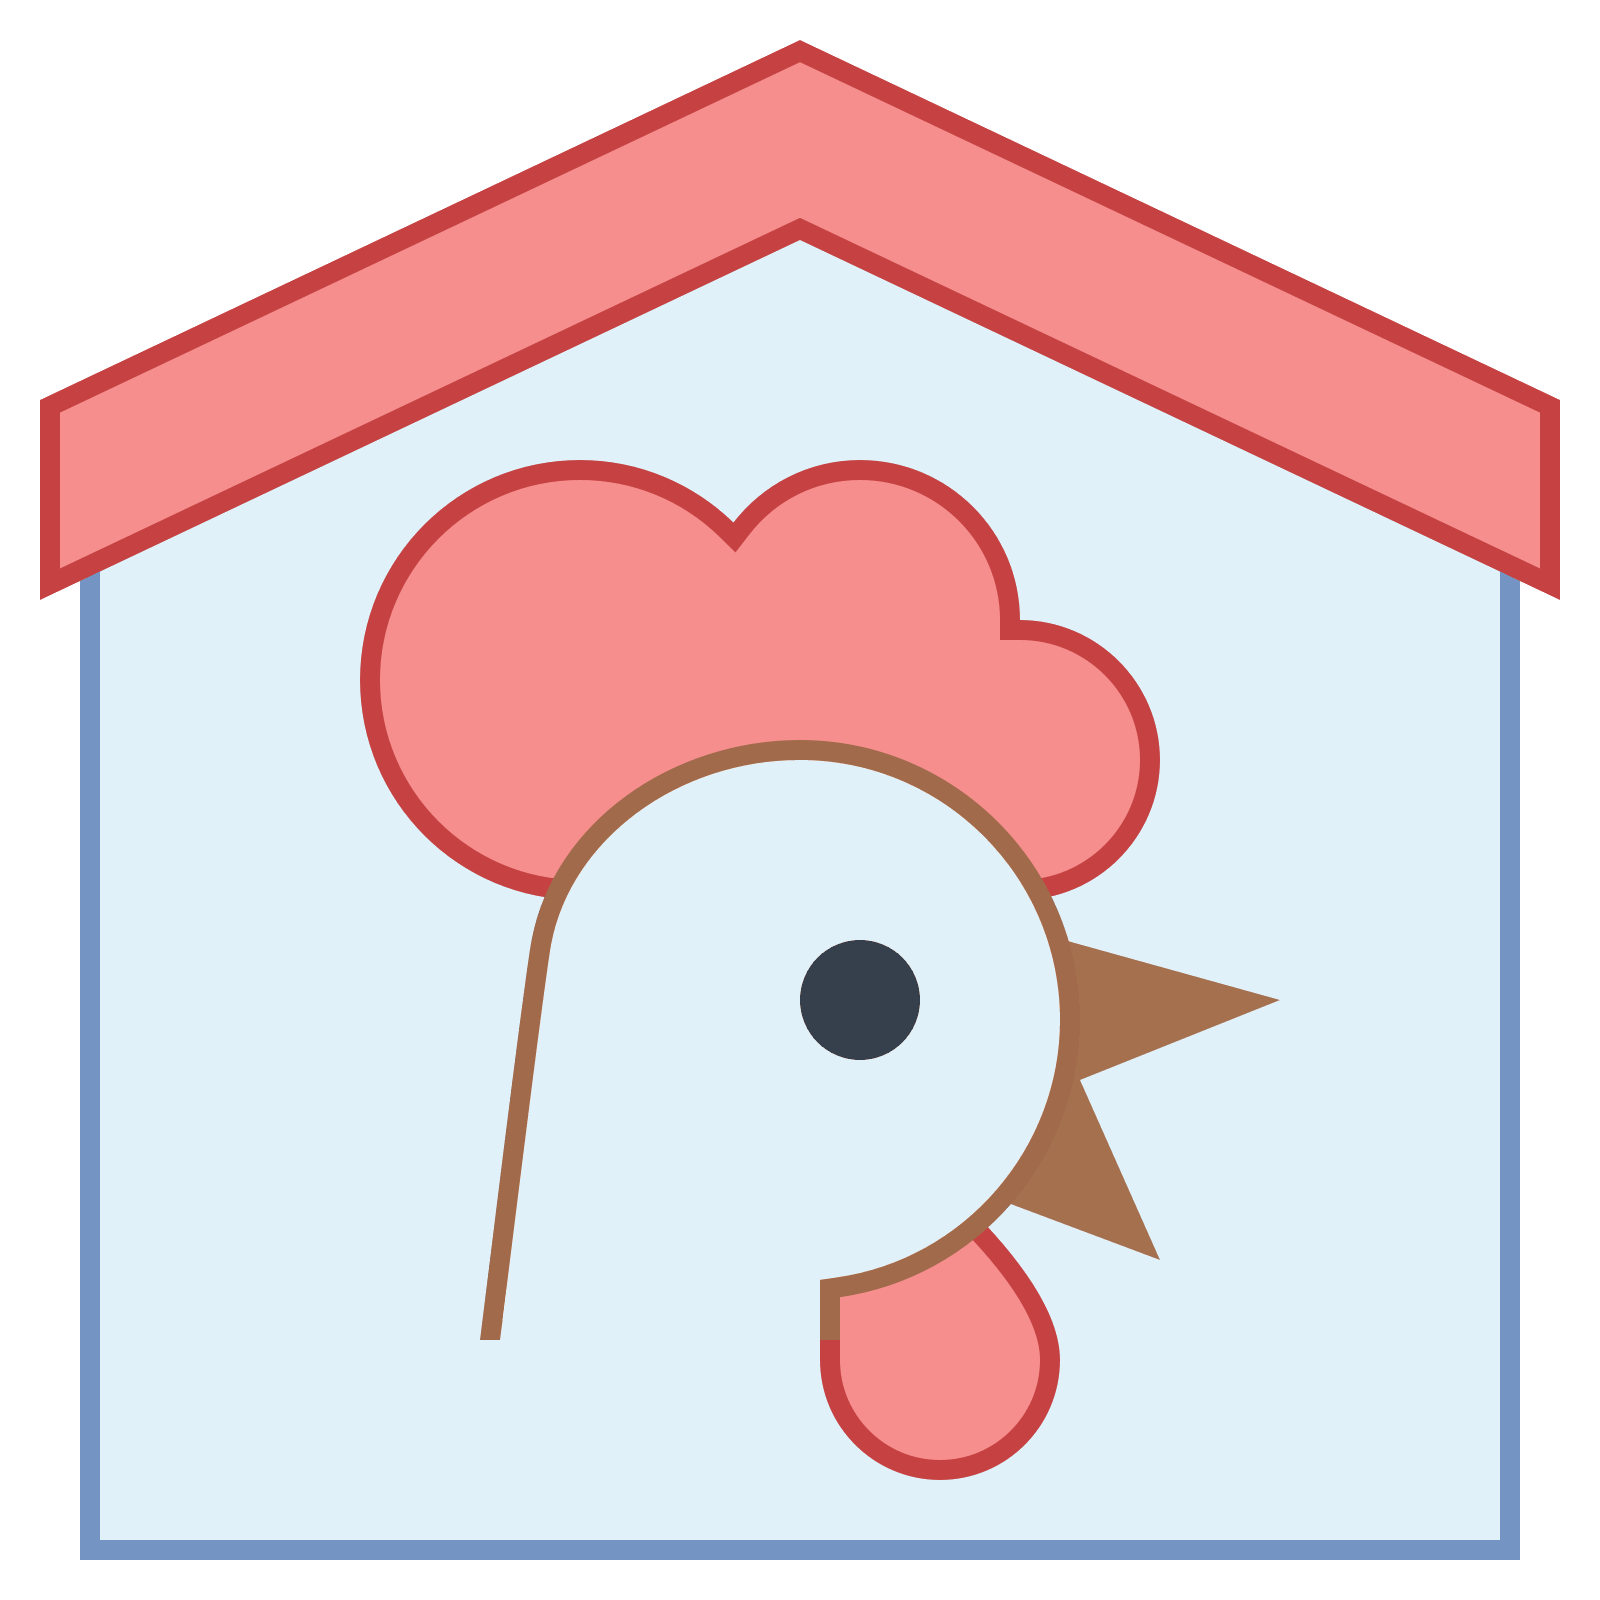 Doghouse clipart hen house.  farm png icon